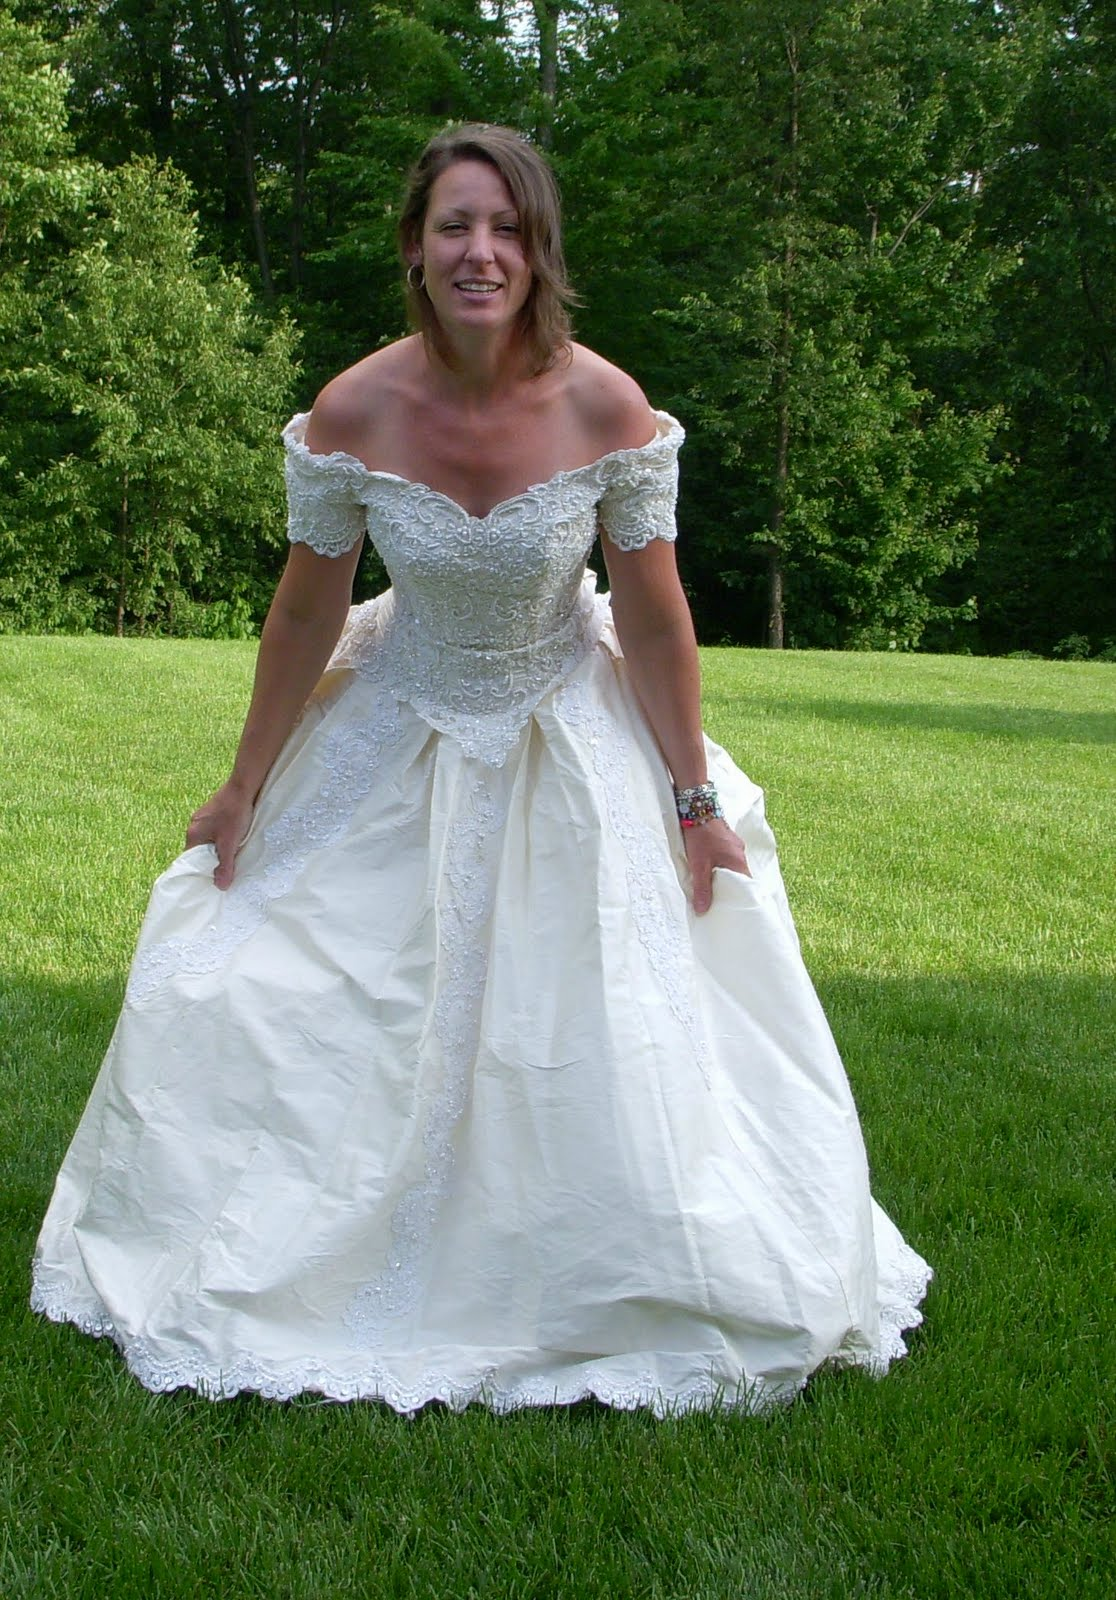 Duct Tape Wedding Dress - Gown And Dress Gallery